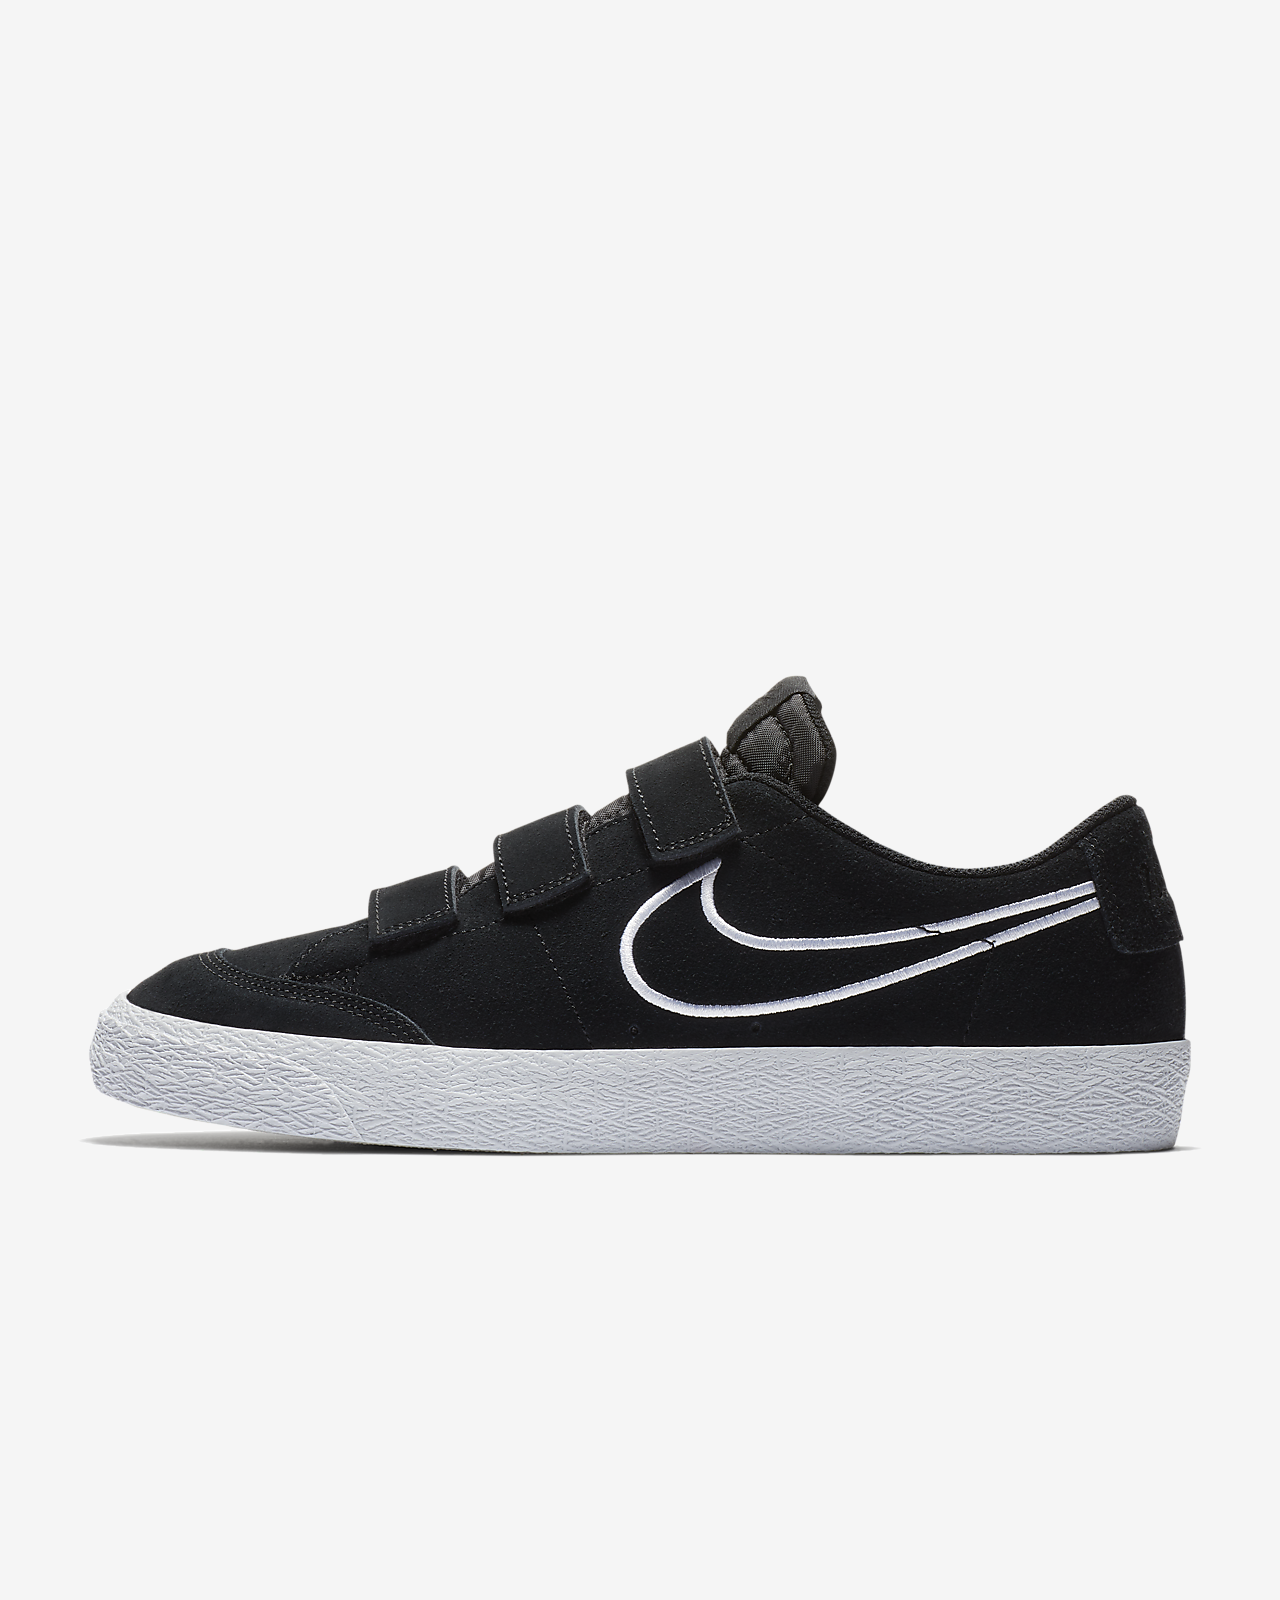 Nike SB Zoom Blazer AC XT Black White Men Skate Boarding Shoe Sneaker AH3434001